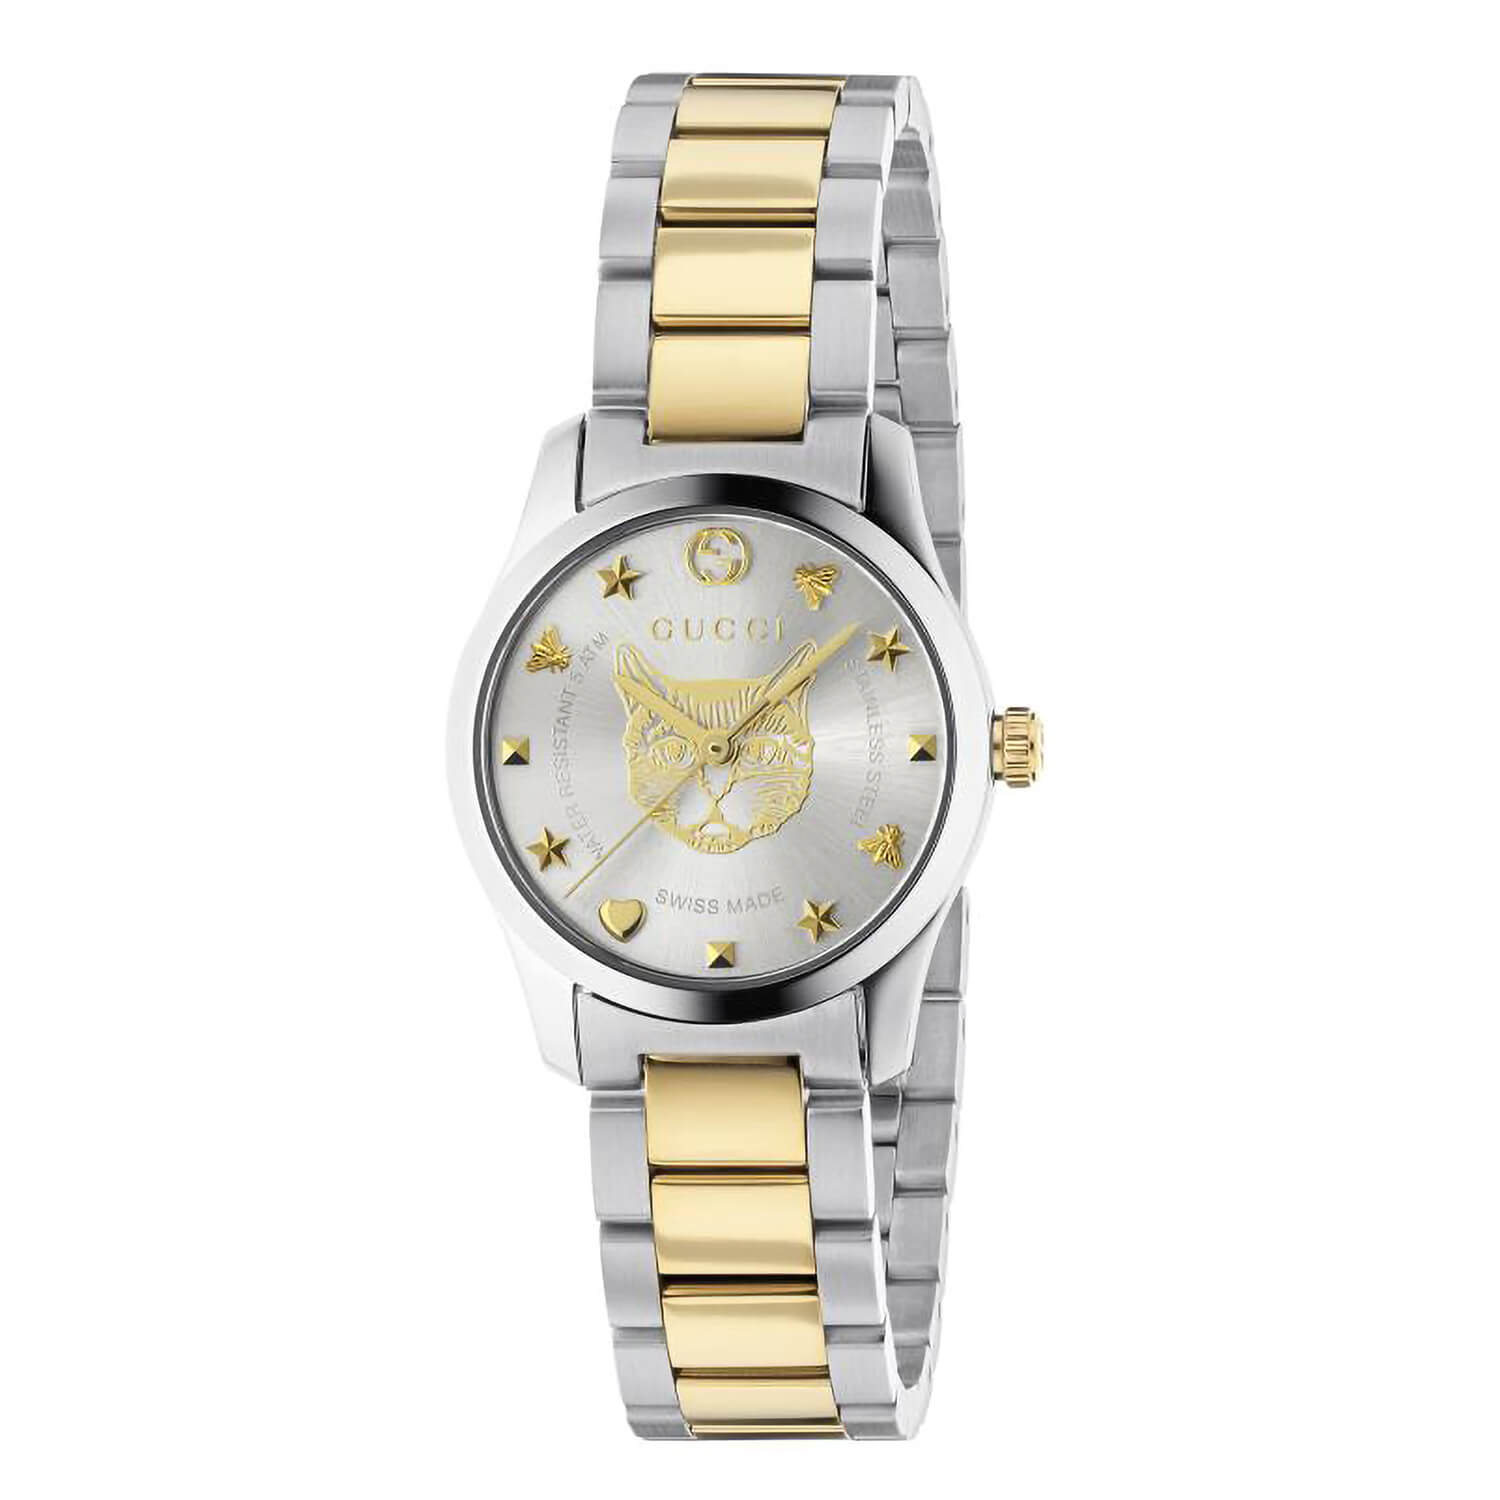 Gucci G-Timeless Feline (Cat) Two Tone Steel 27mm Ladies' Watch